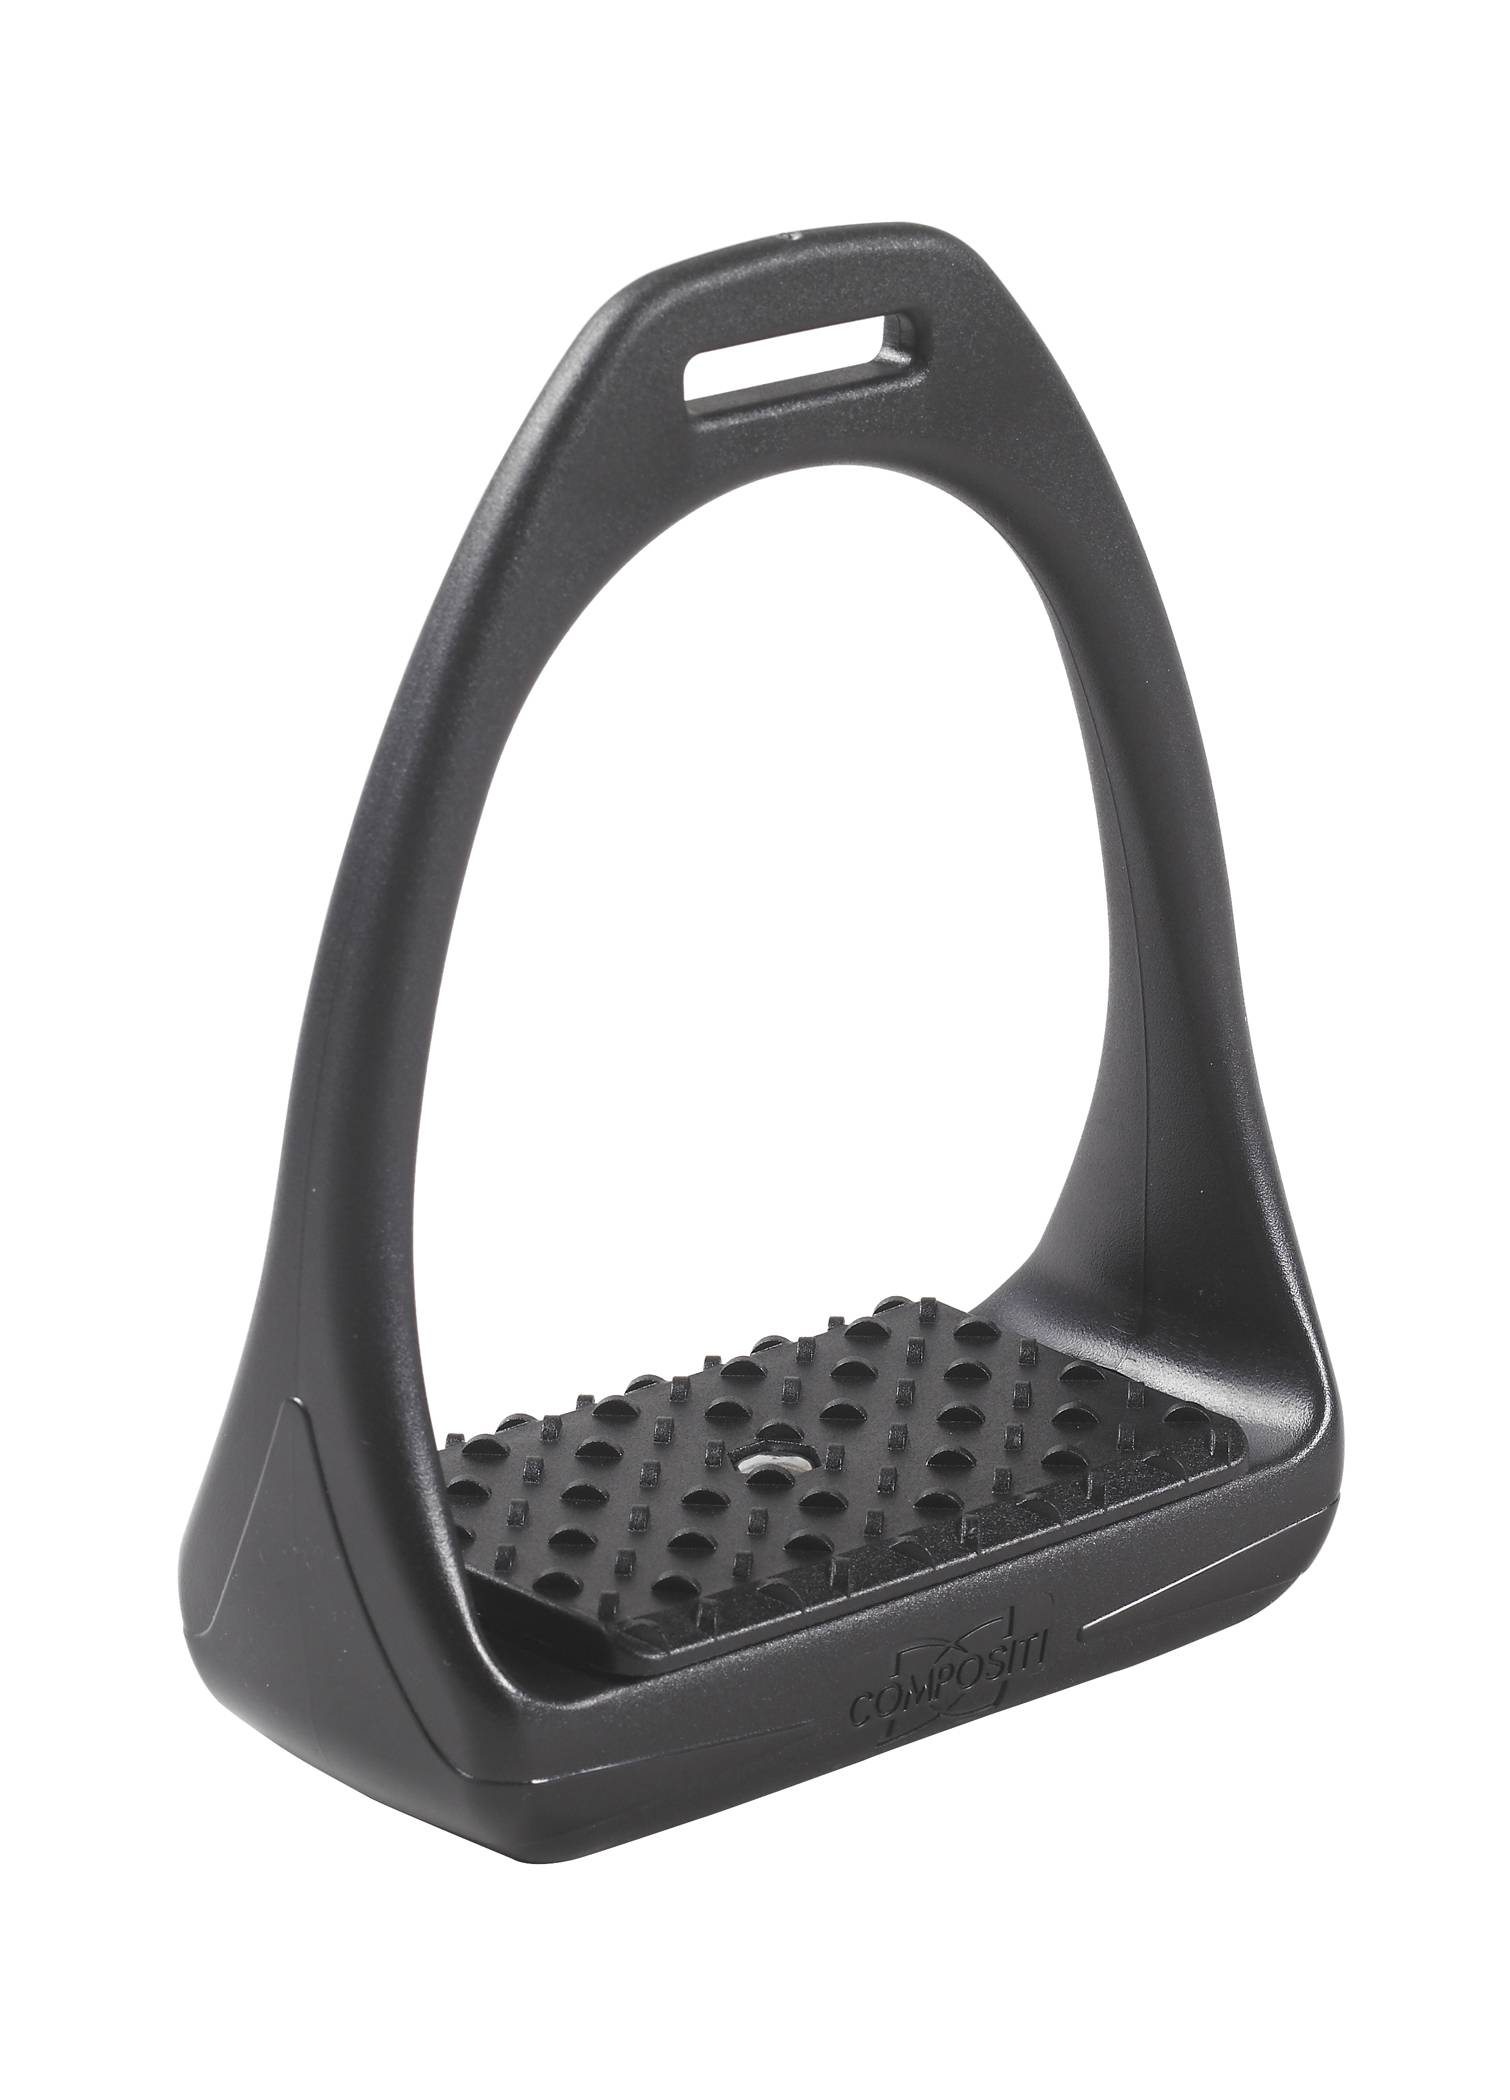 Compositi Reflex 3D Swivel Action Wide Track Stirrups